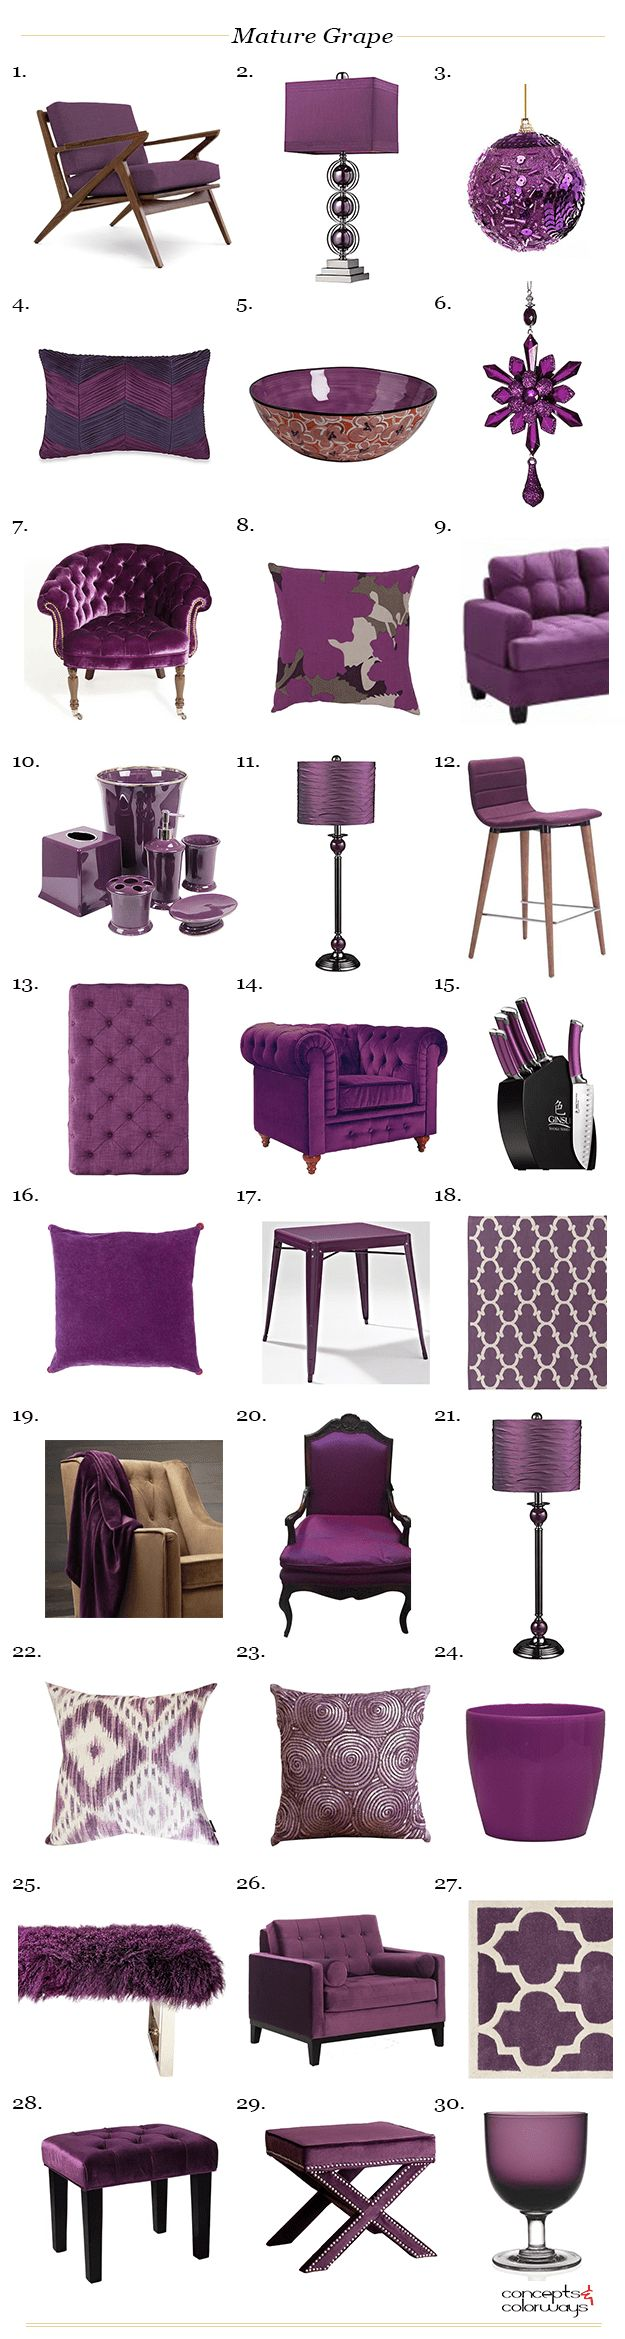 sherwin williams mature grape product roundup, grape purple used in interior design, interior styling ideas